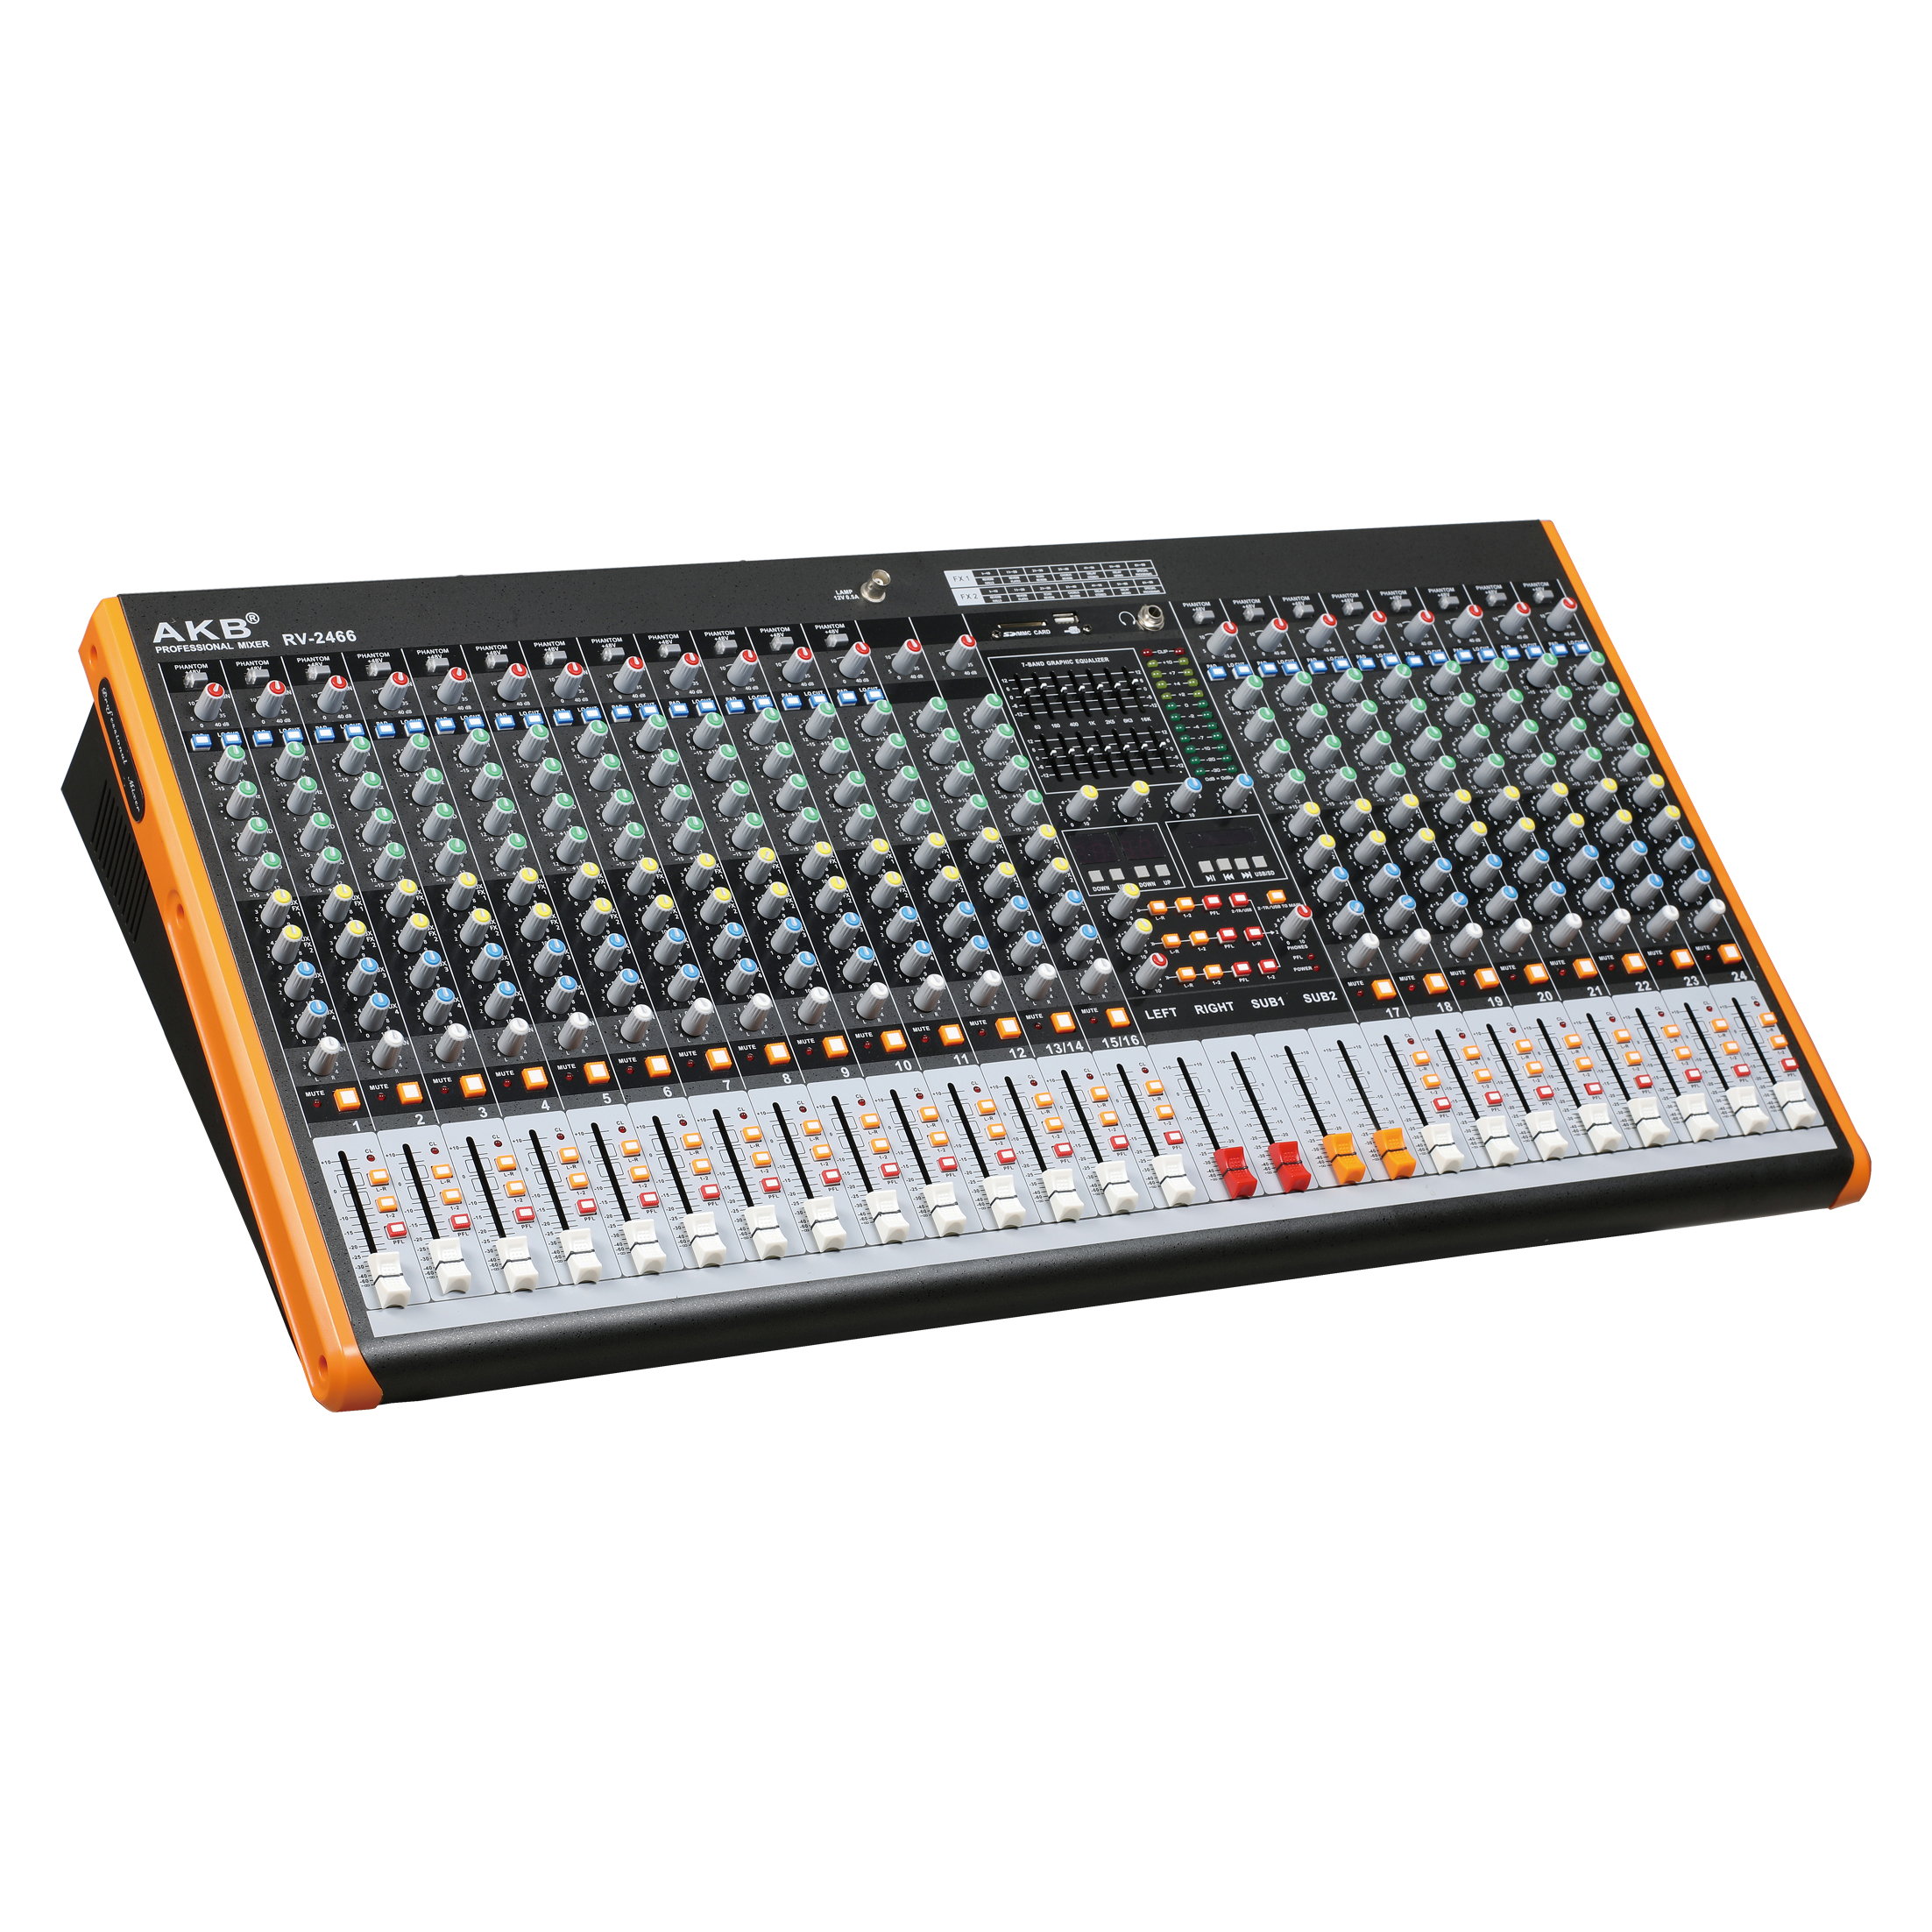 RV-2466 stable quality 24 channel professional mixer console